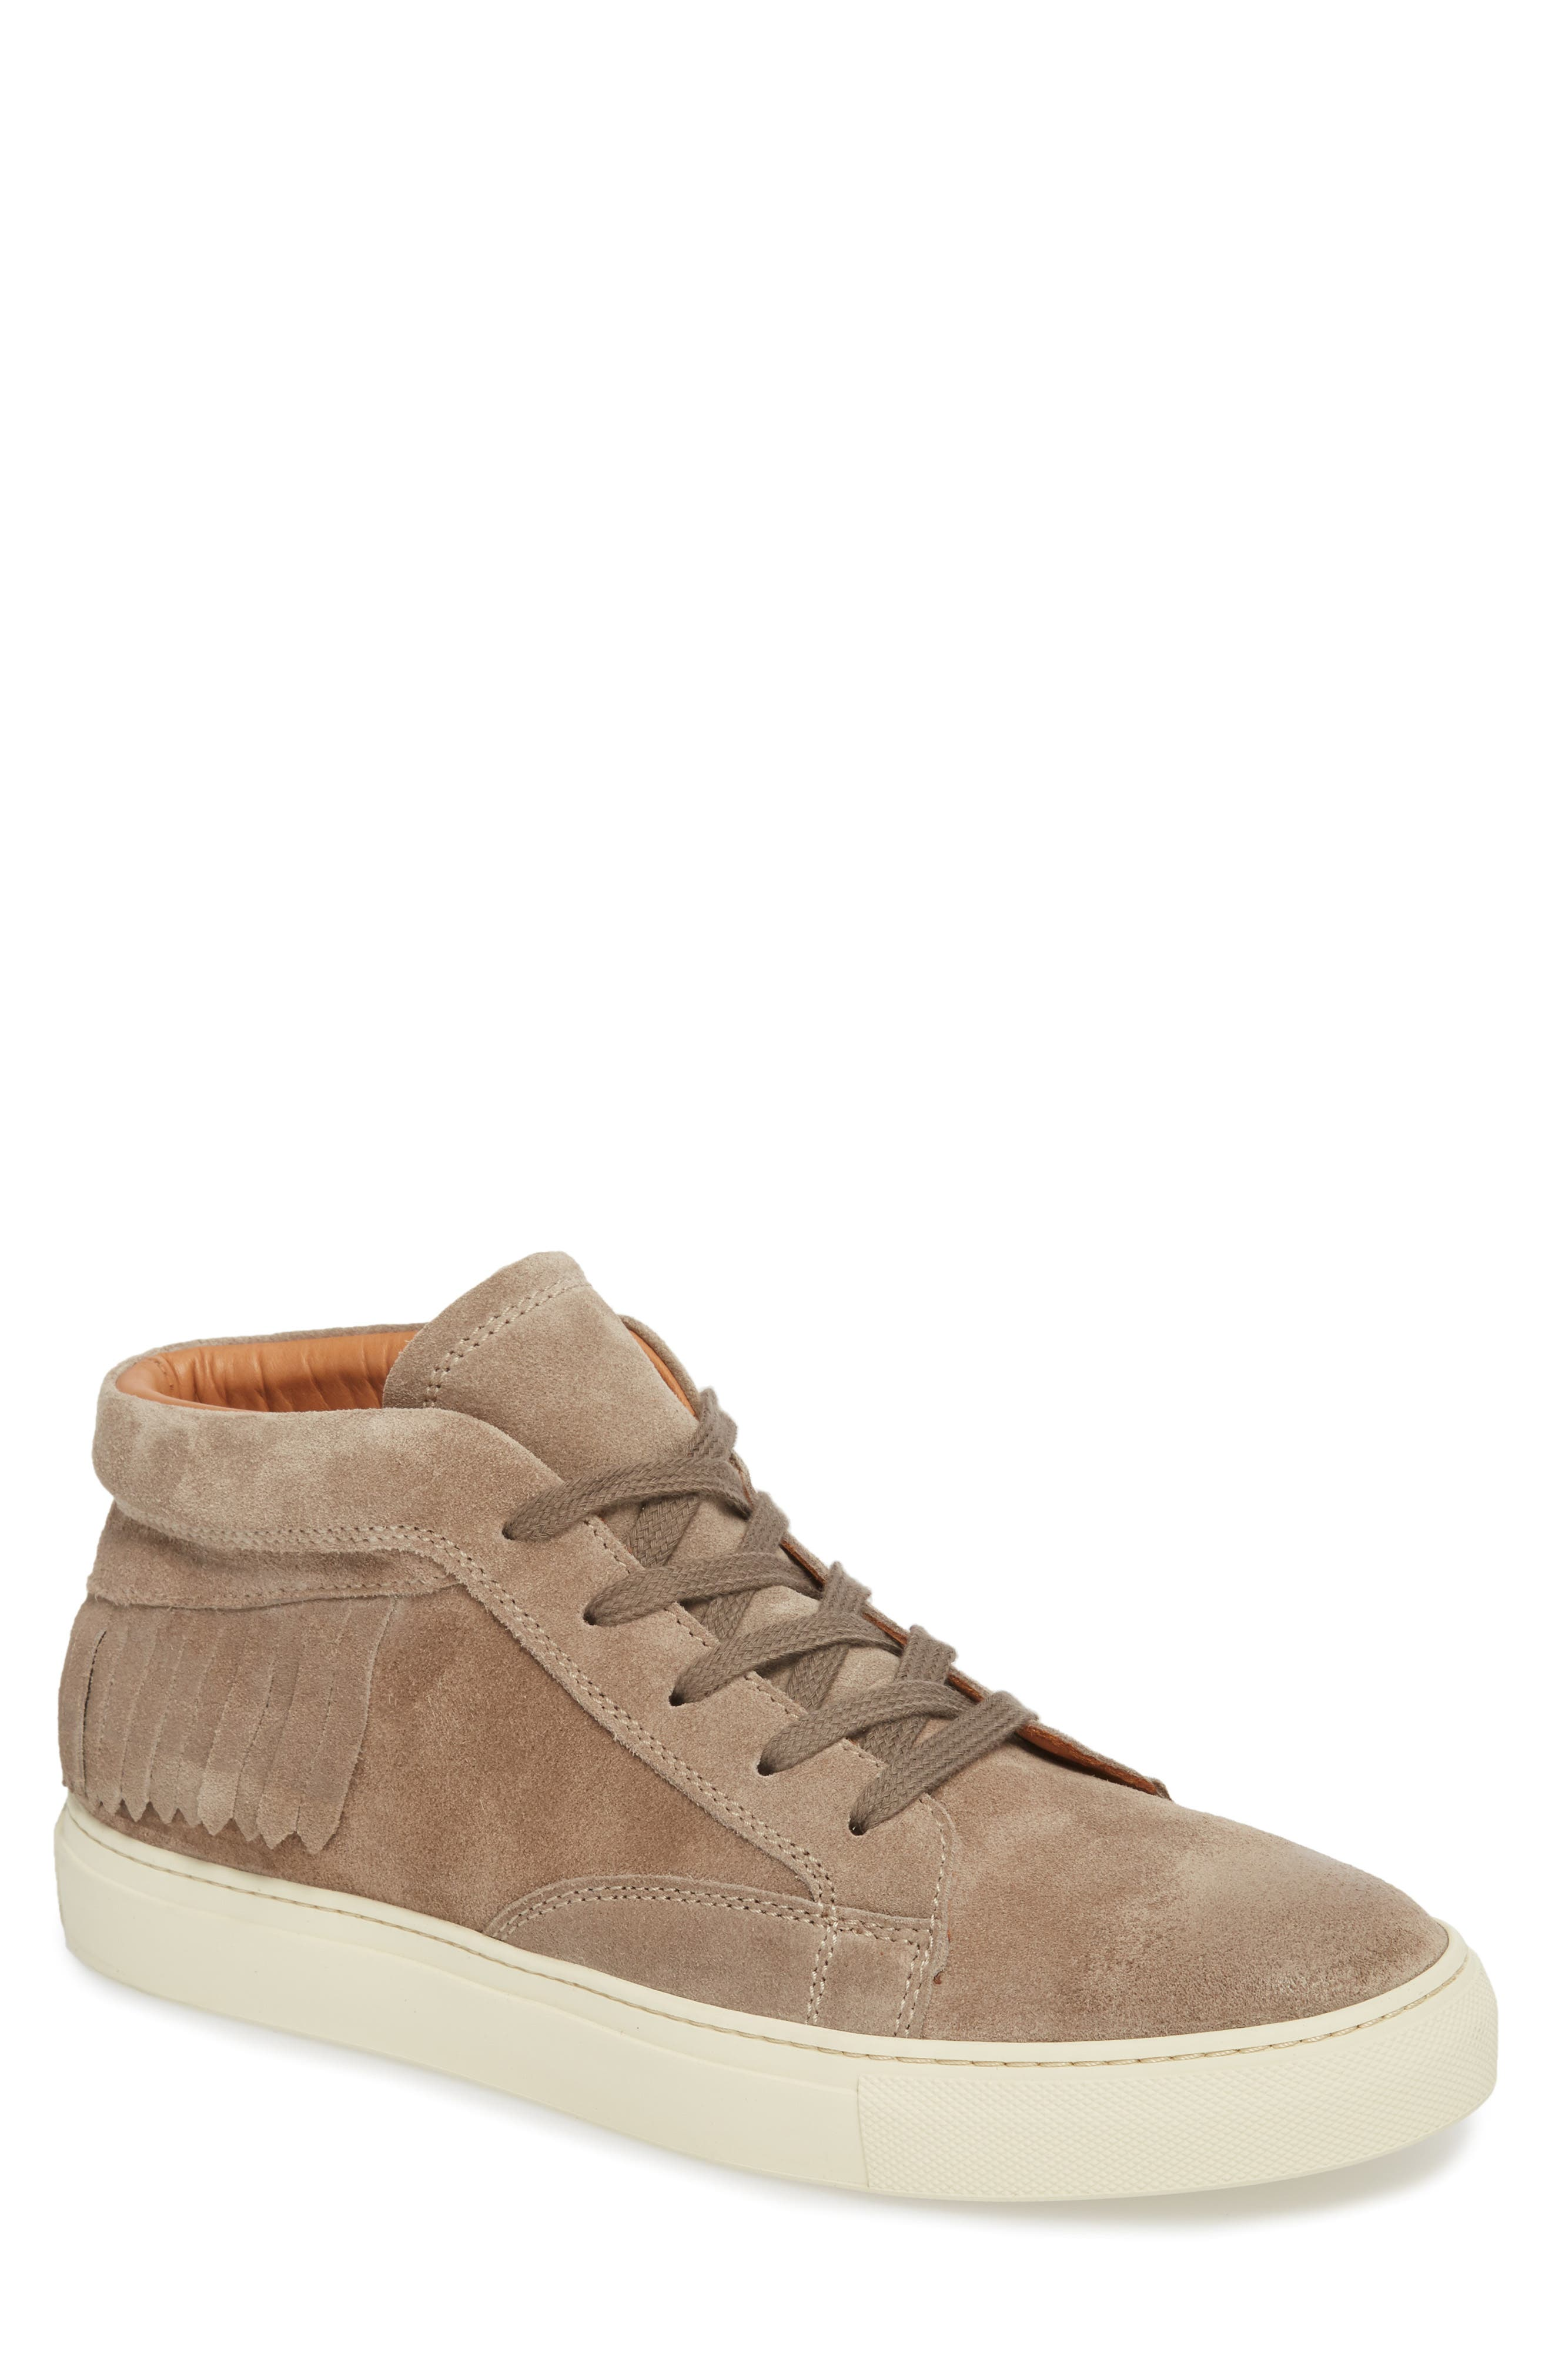 Reed Fringe Sneaker,                             Main thumbnail 1, color,                             259